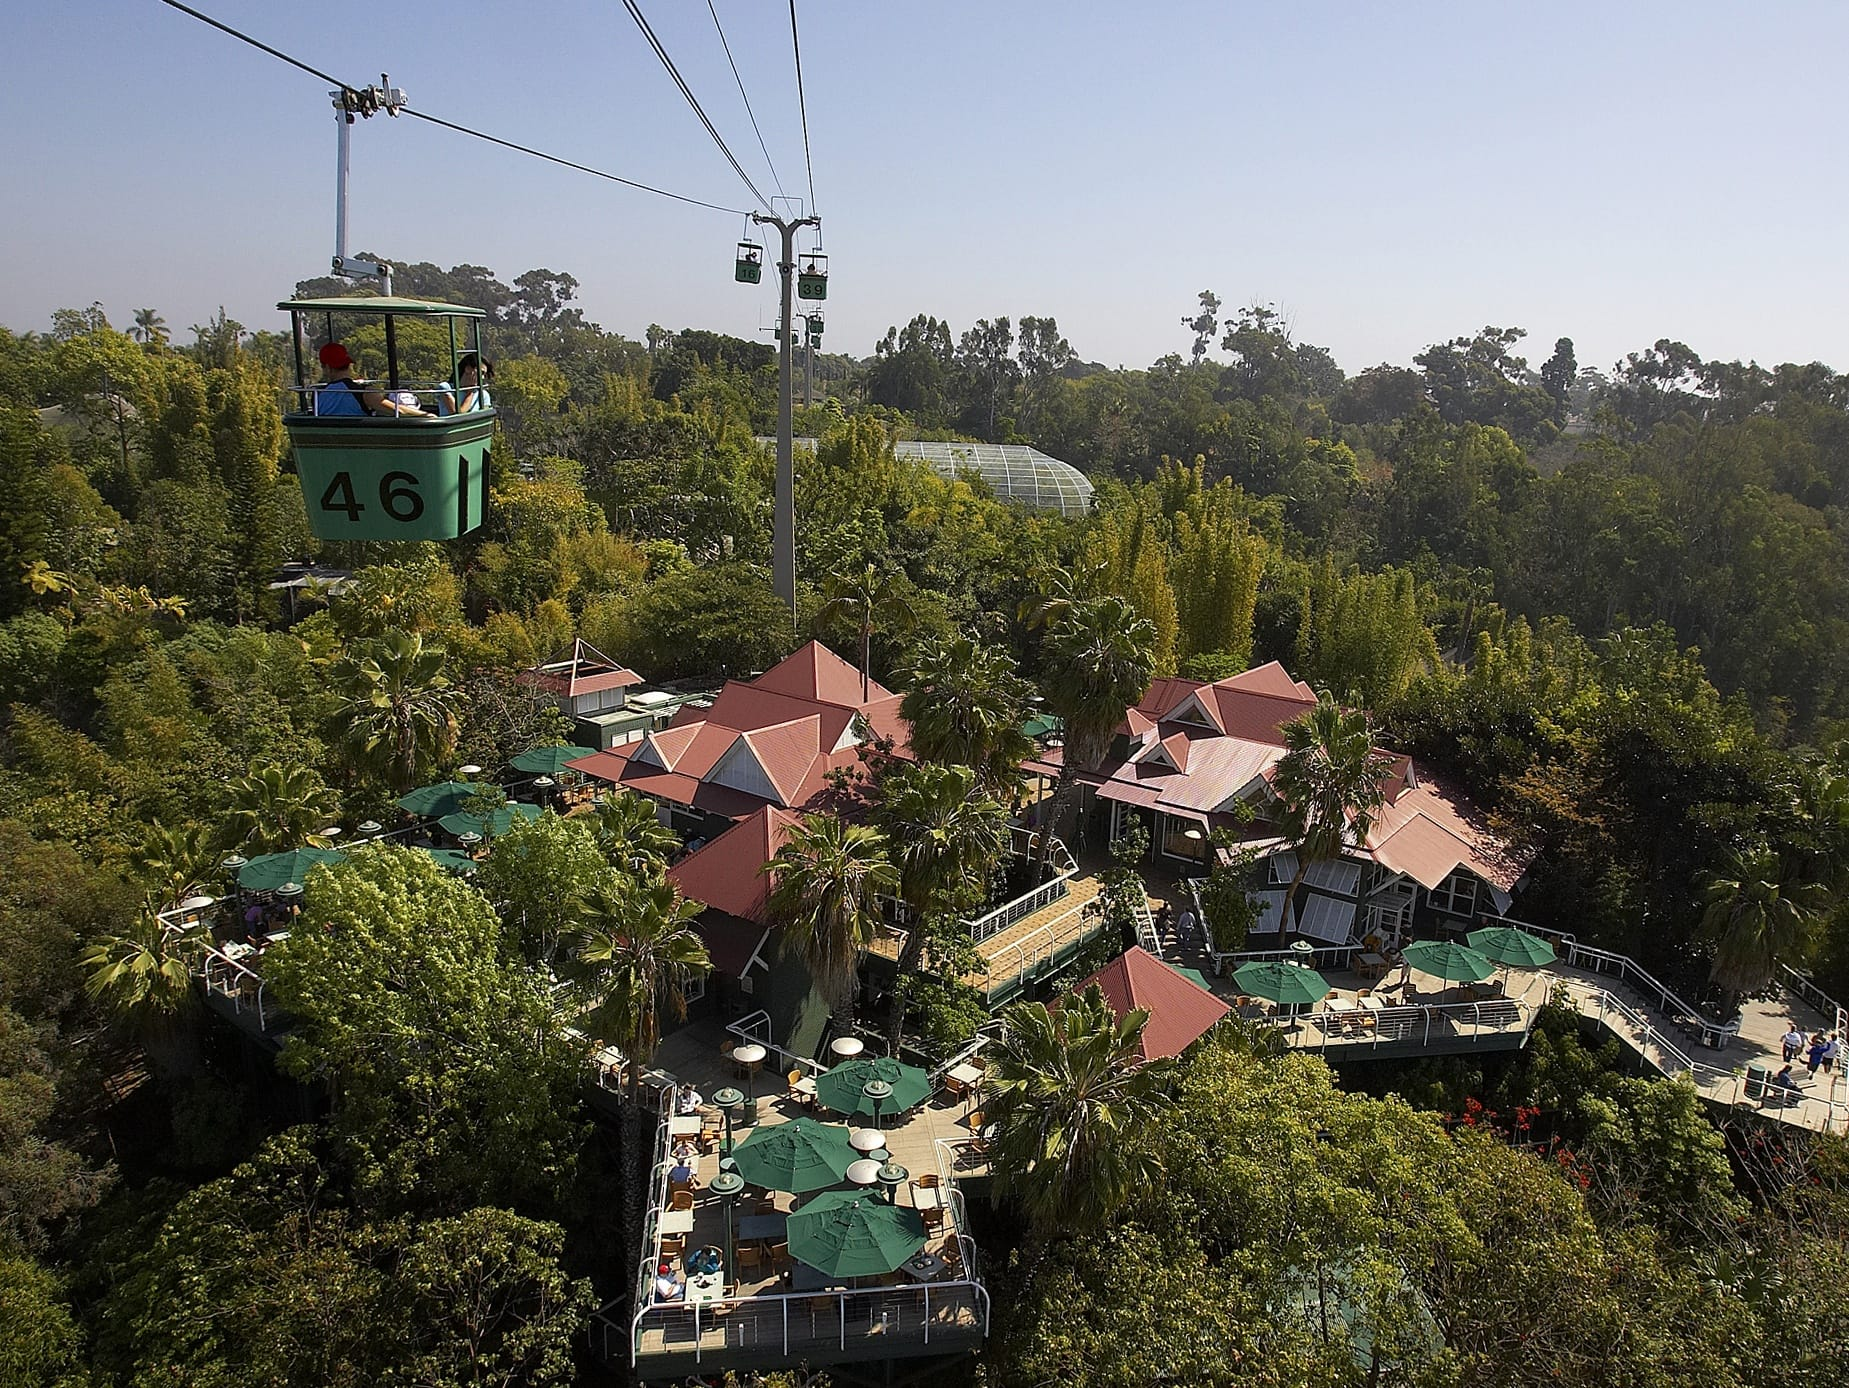 The Skyfari ride provides great views of San Diego Zoo with kids